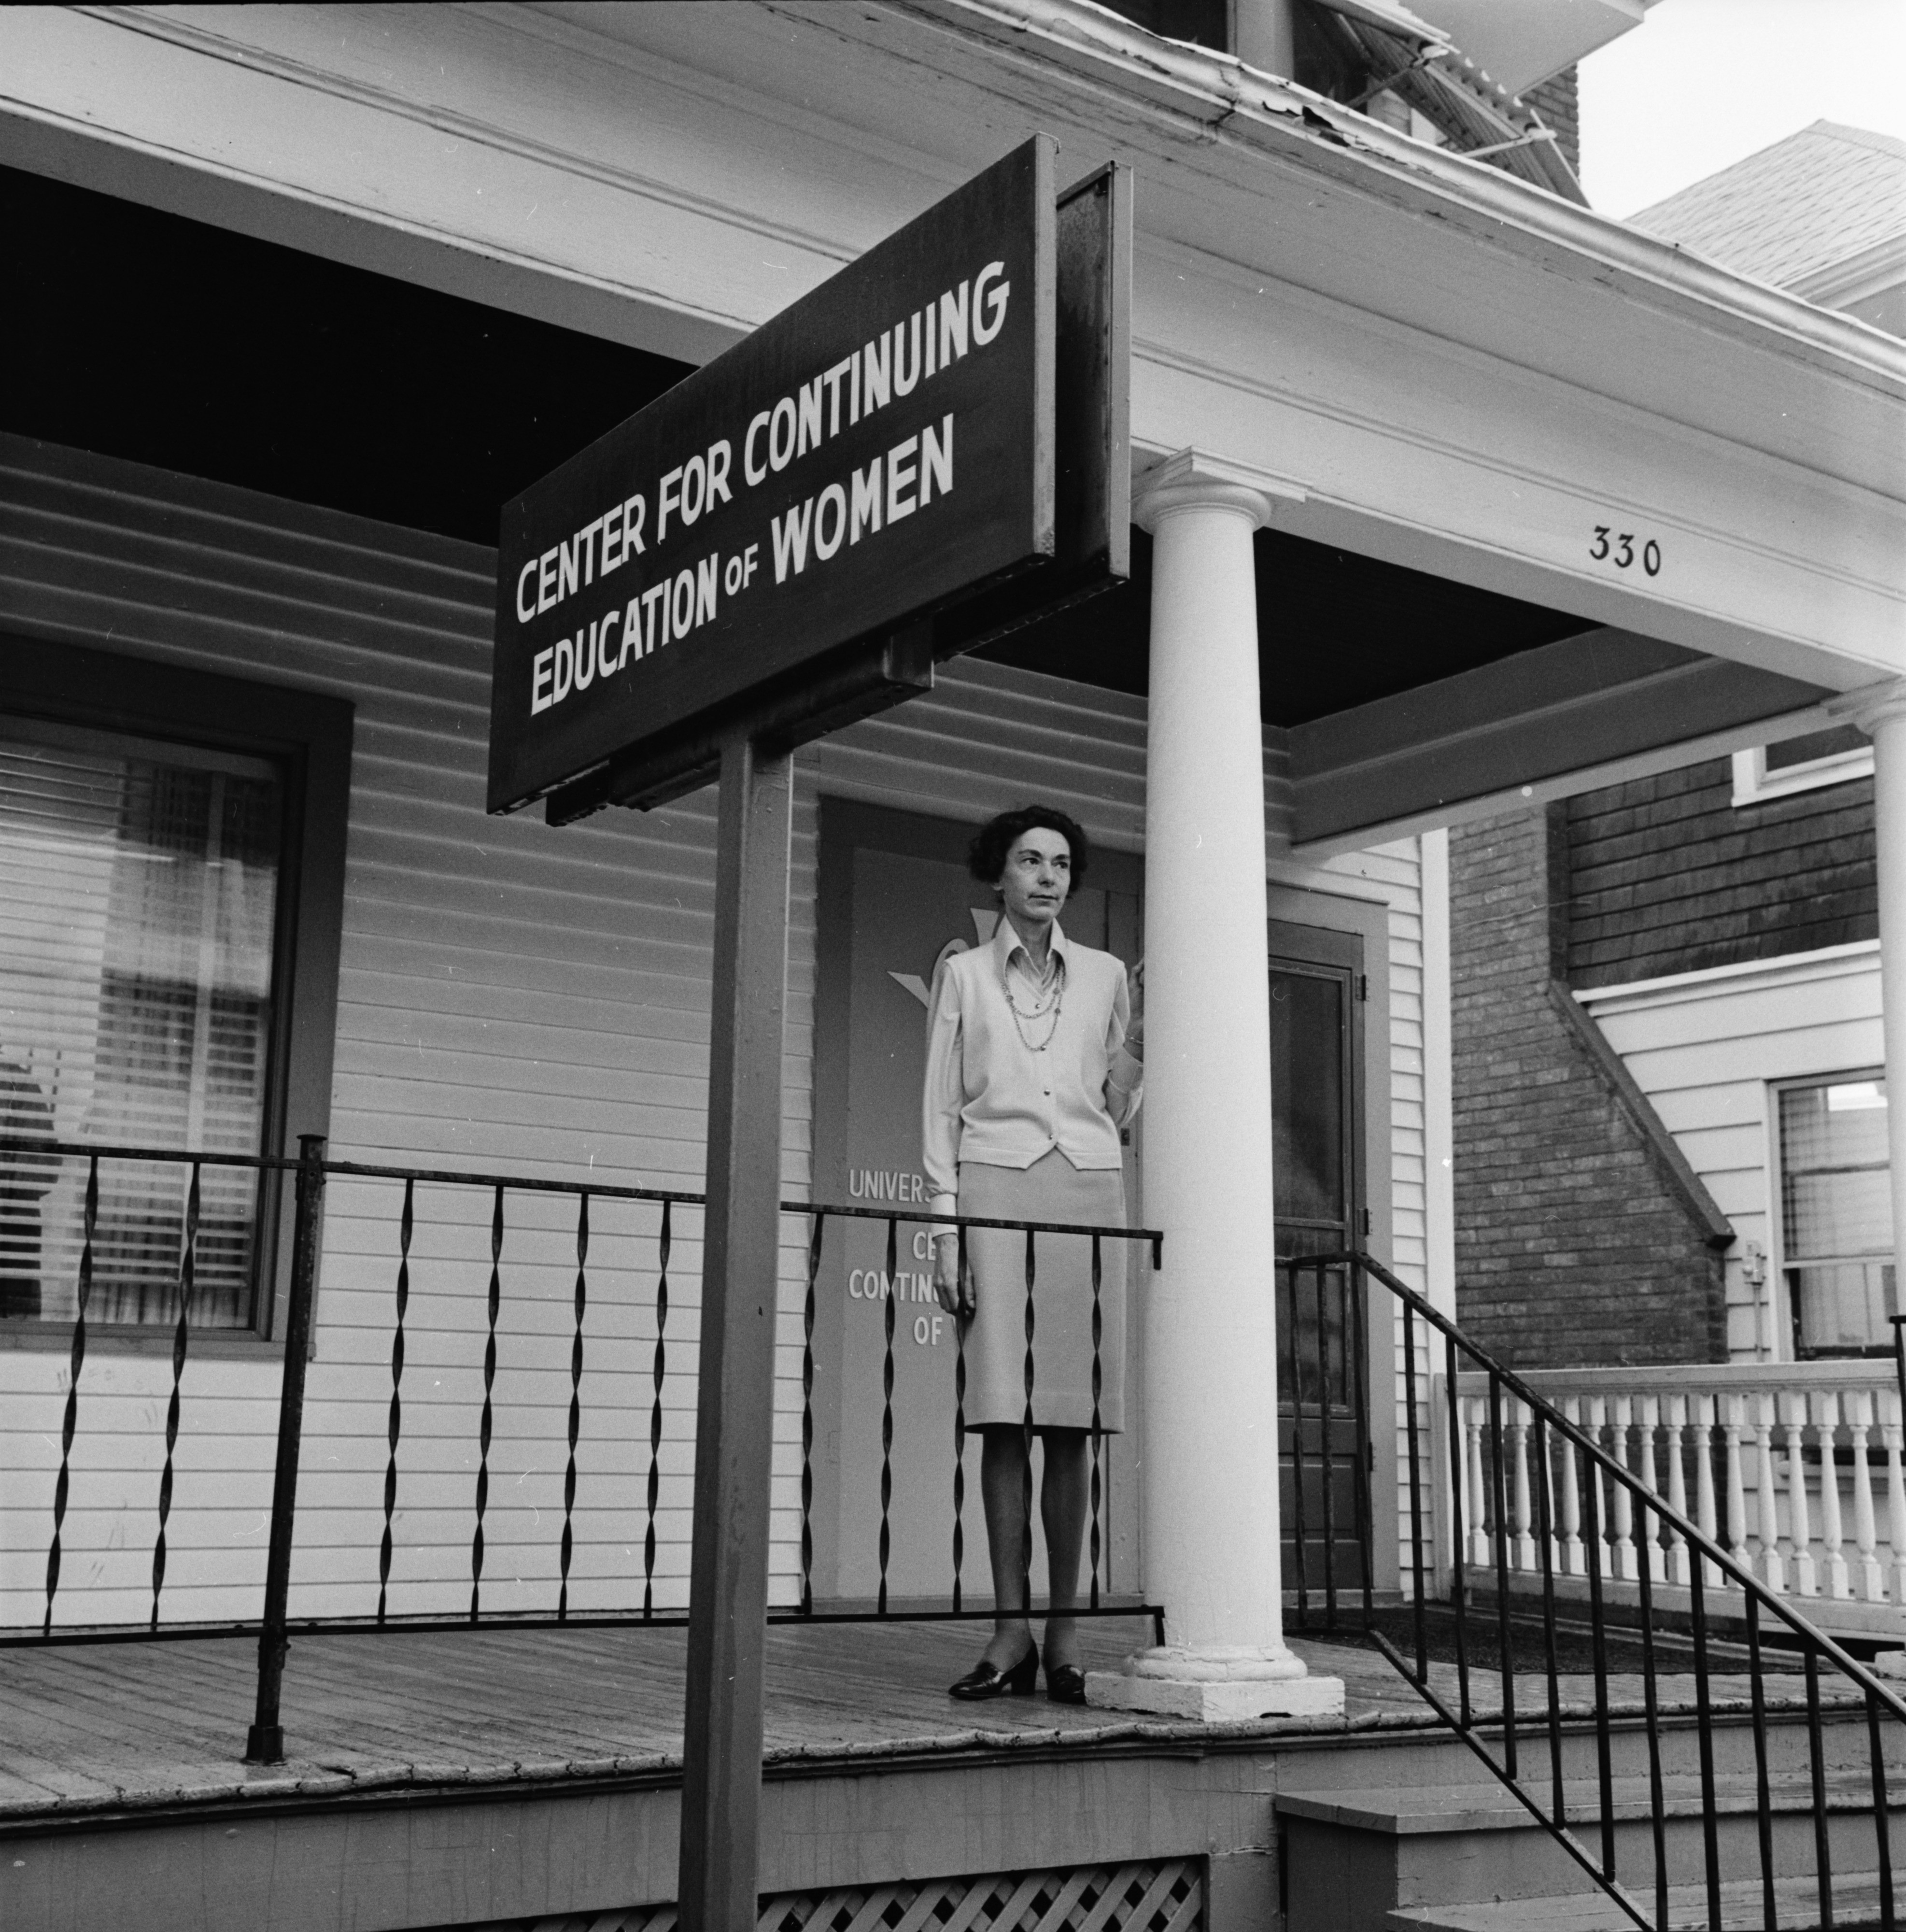 Patricia Wulp, assistant director of the Center for the Education of Women (CEW), May 1974 image